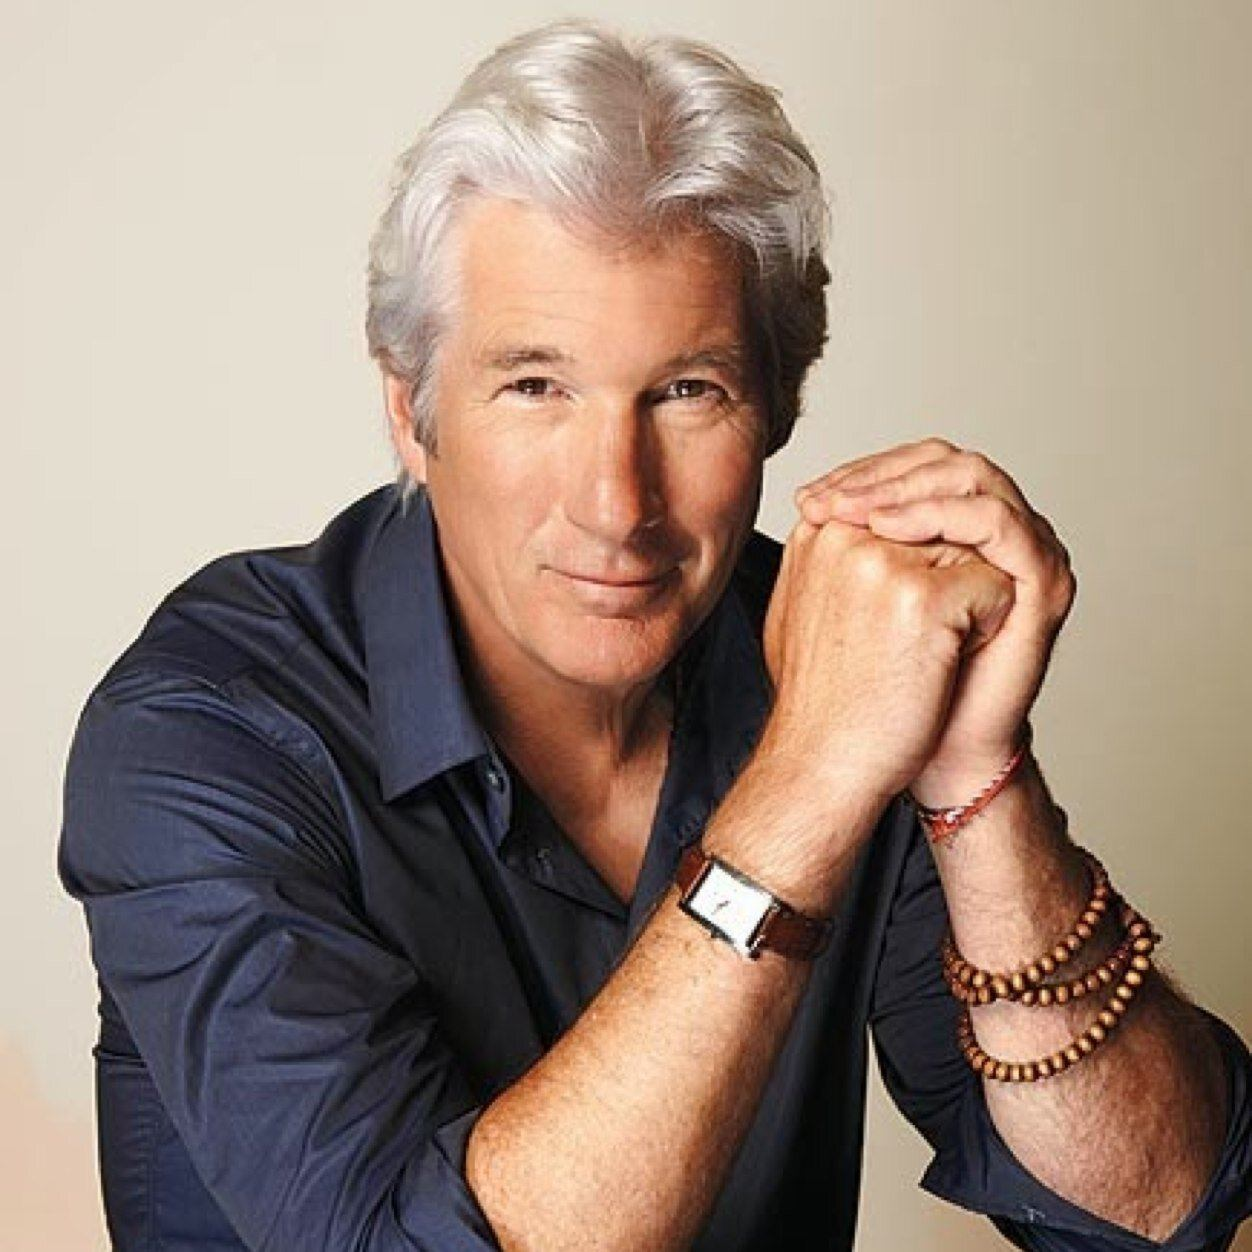 OB2pVJt2 20 Things You Didn't Know About Richard Gere